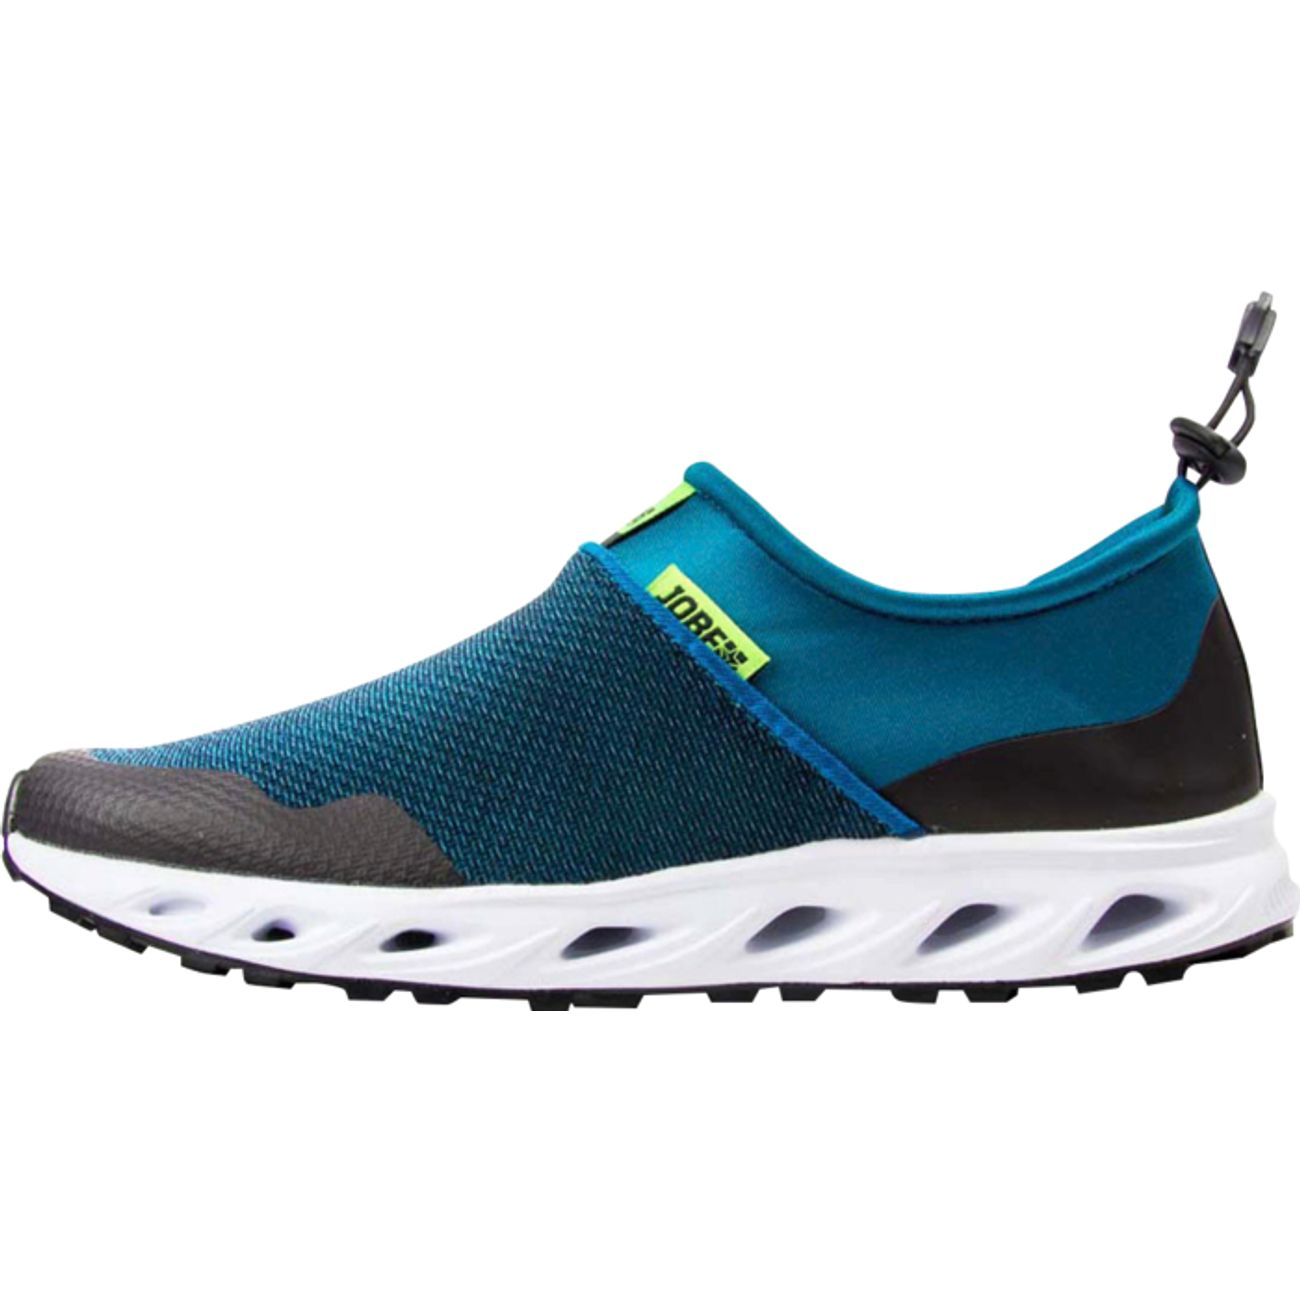 CHAUSSURES BASSES Plage mixte JOBE DISCOVER SLIP-ON TEAL